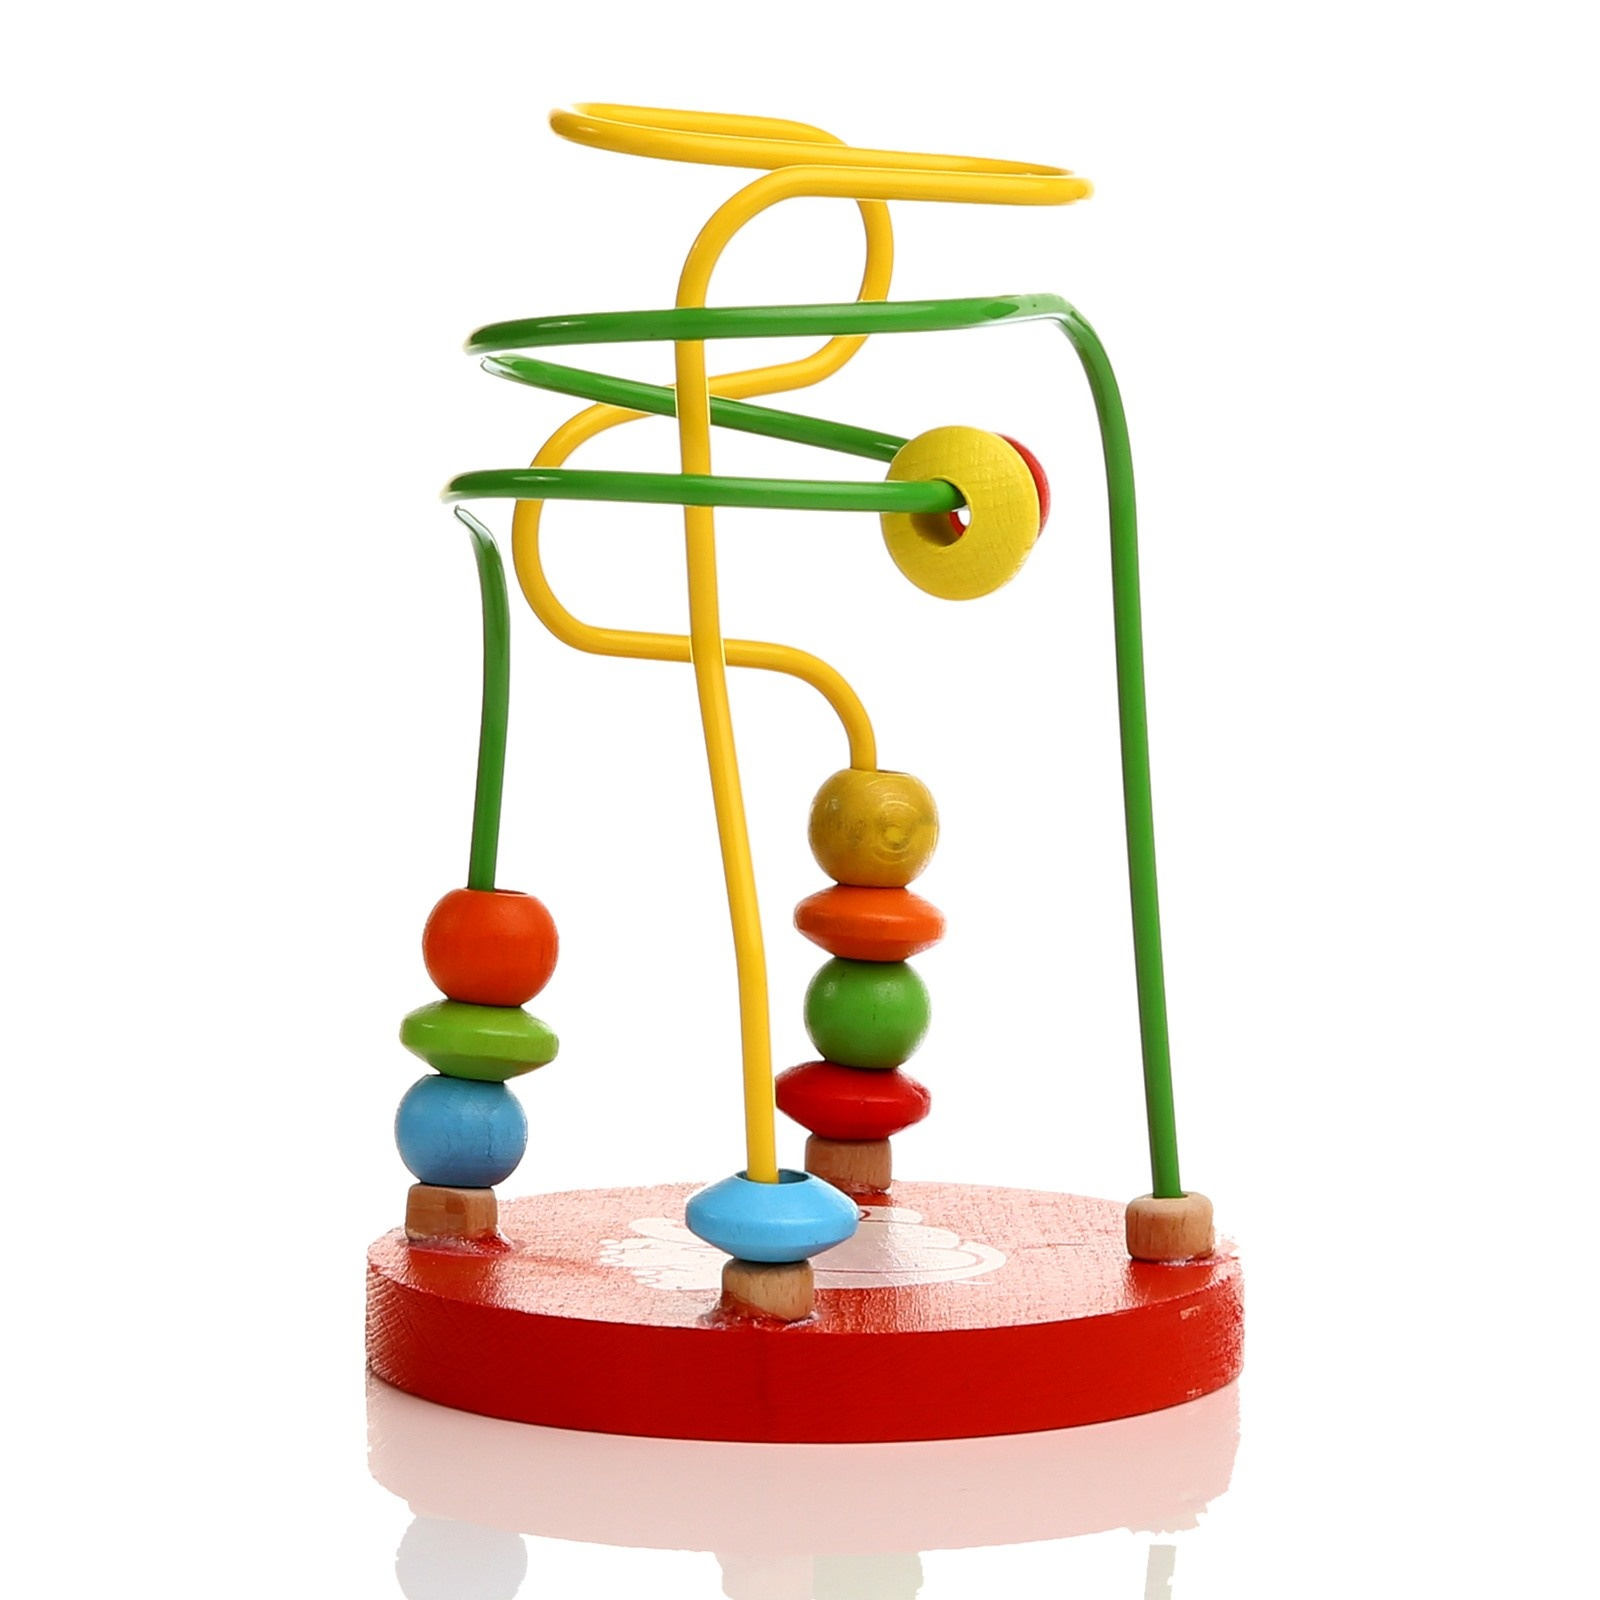 Ebebek Baby&toys Wooden Baby Mini Coordination Game